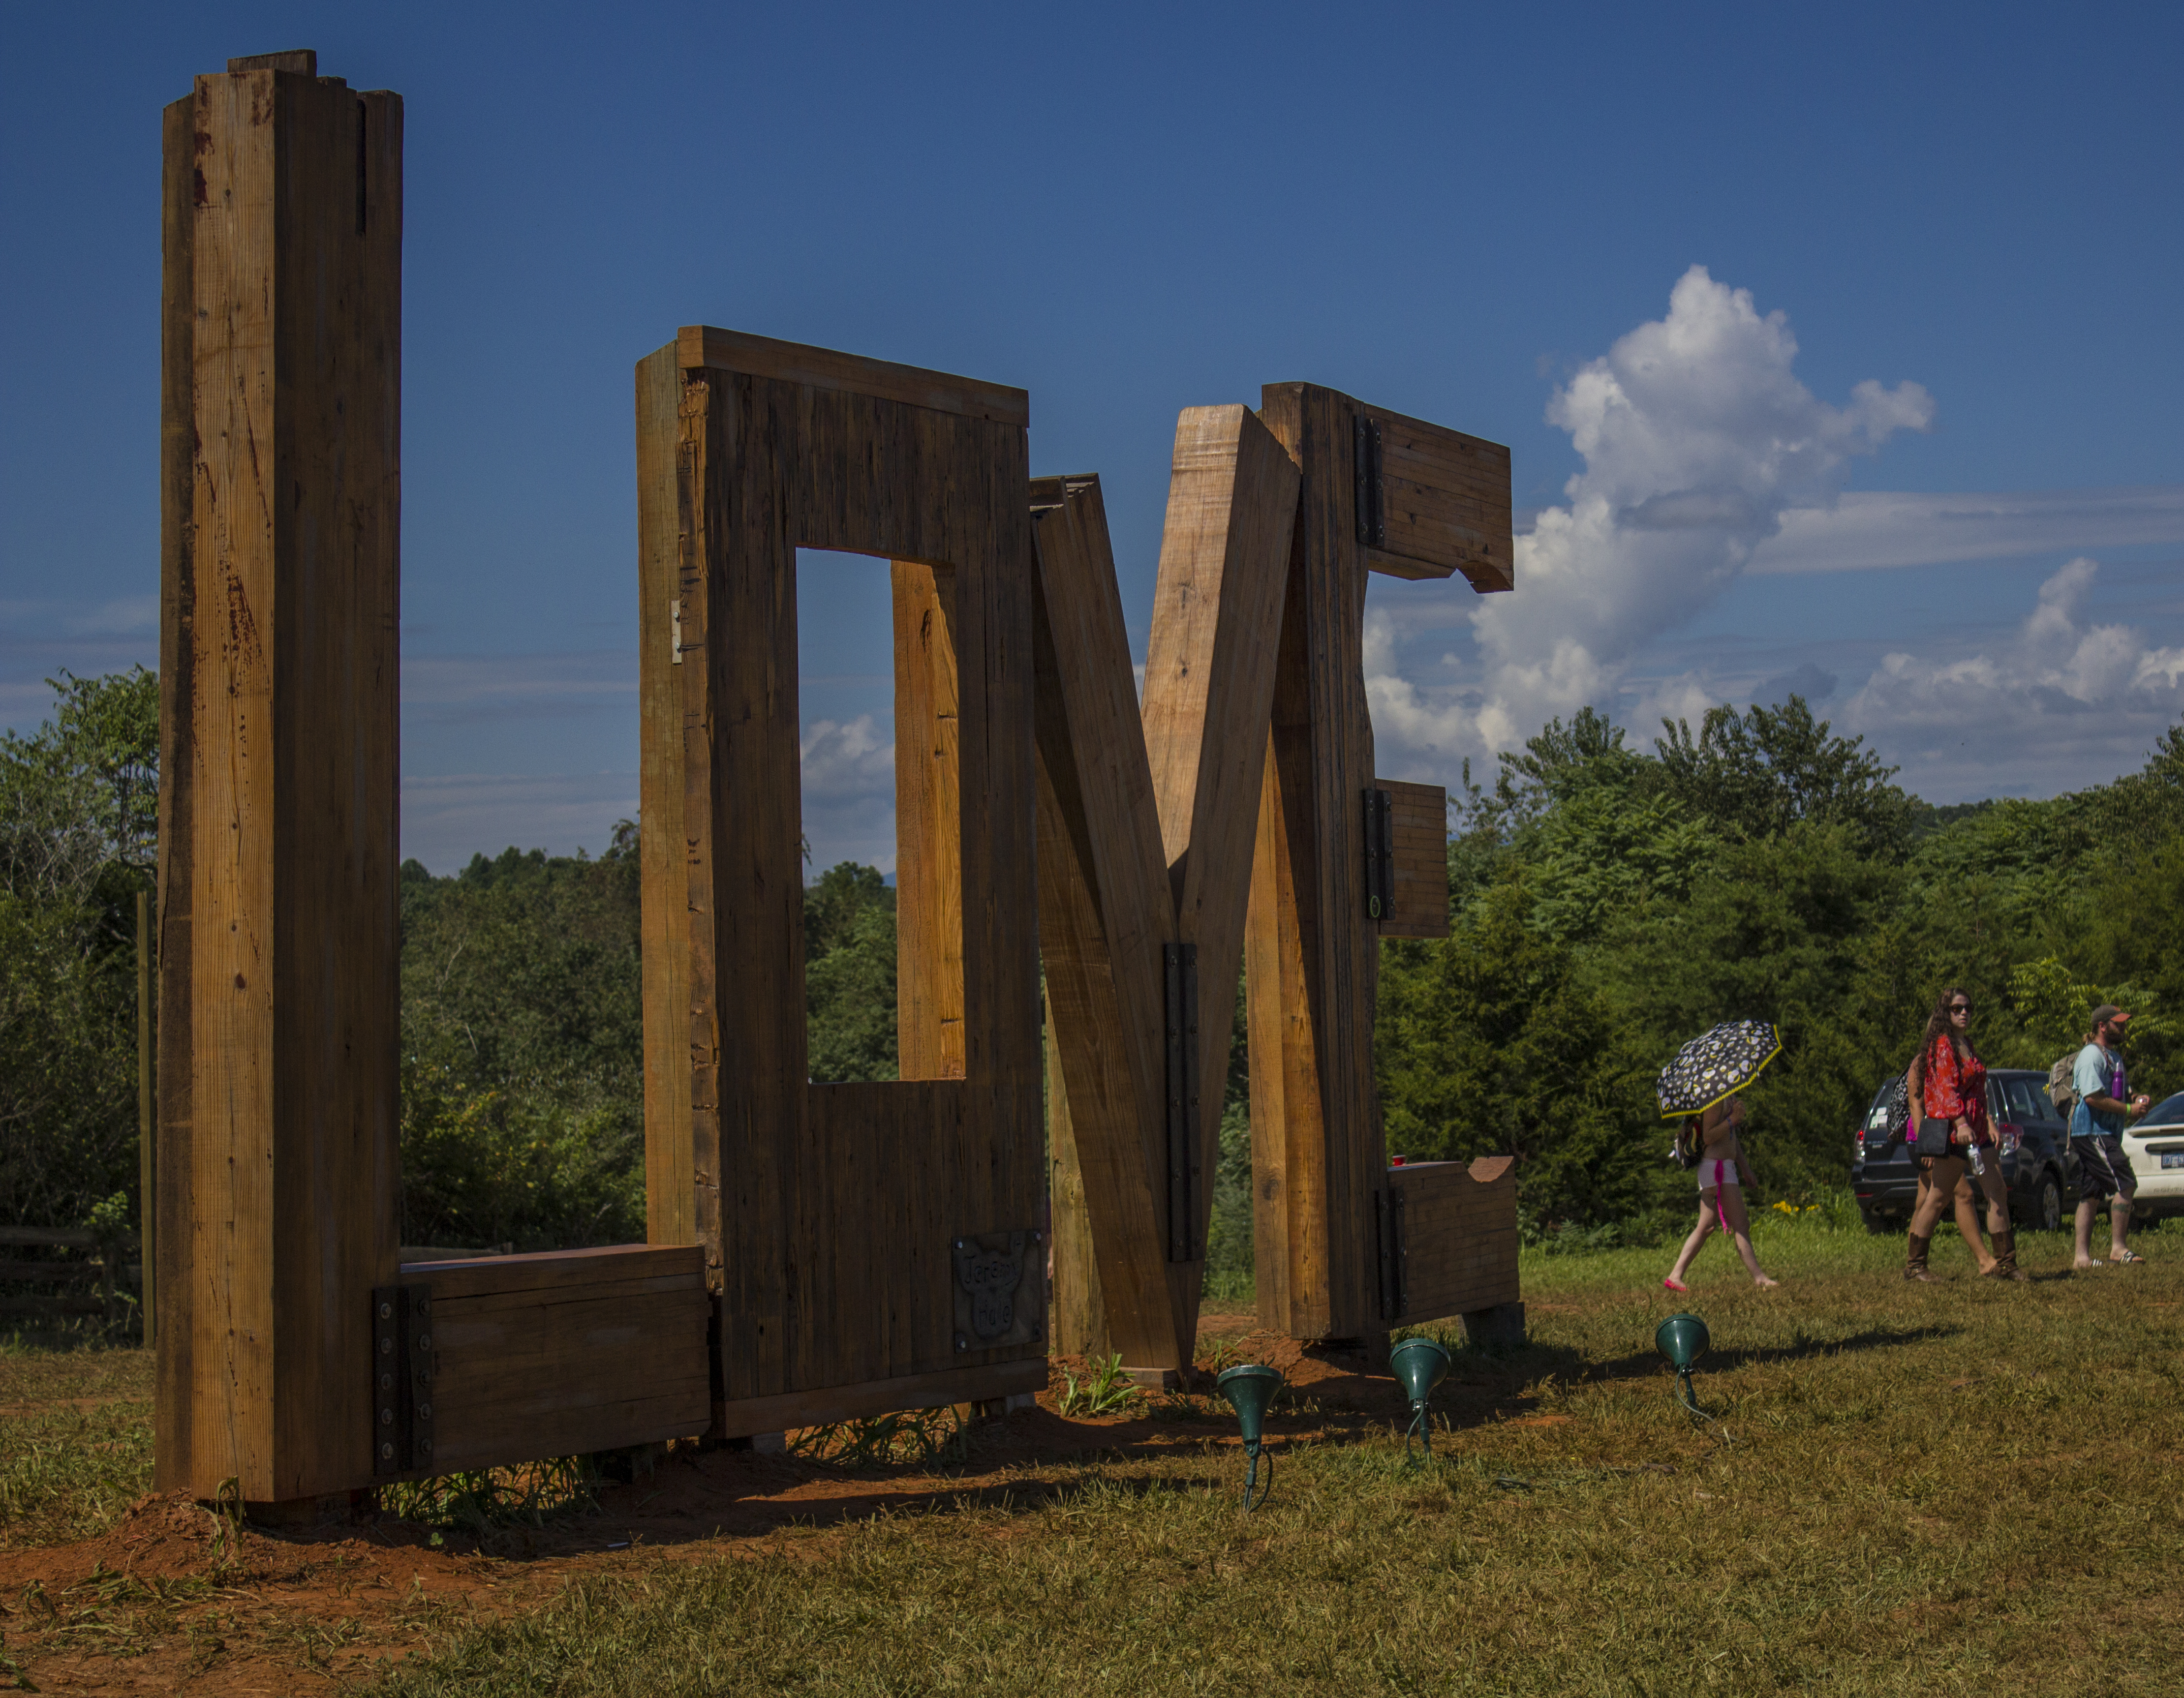 Lockn Music Festival 2014. Photo by: Matthew McGuire